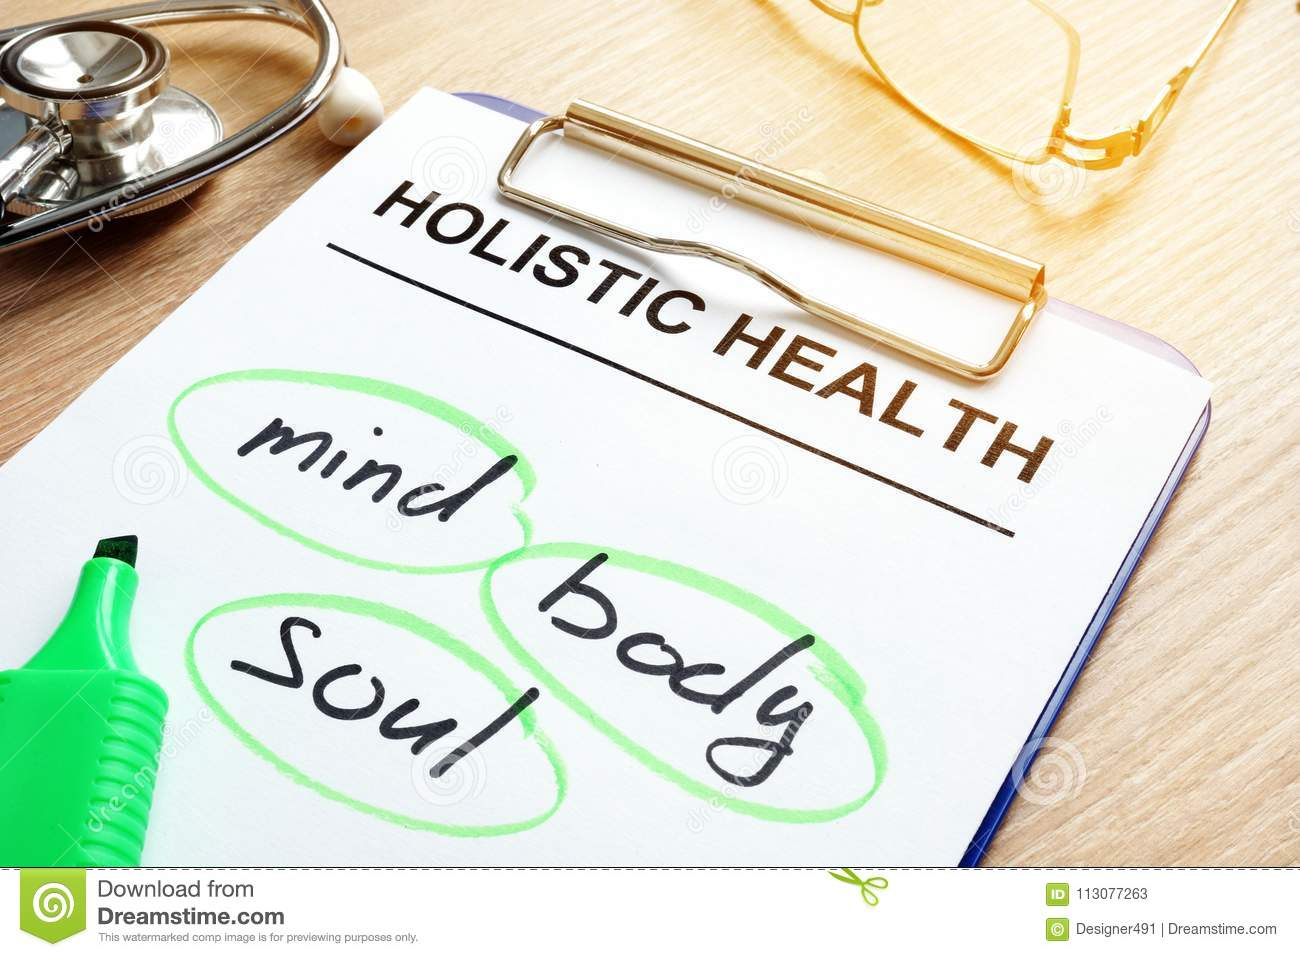 Holistic health and words mind, body and soul.